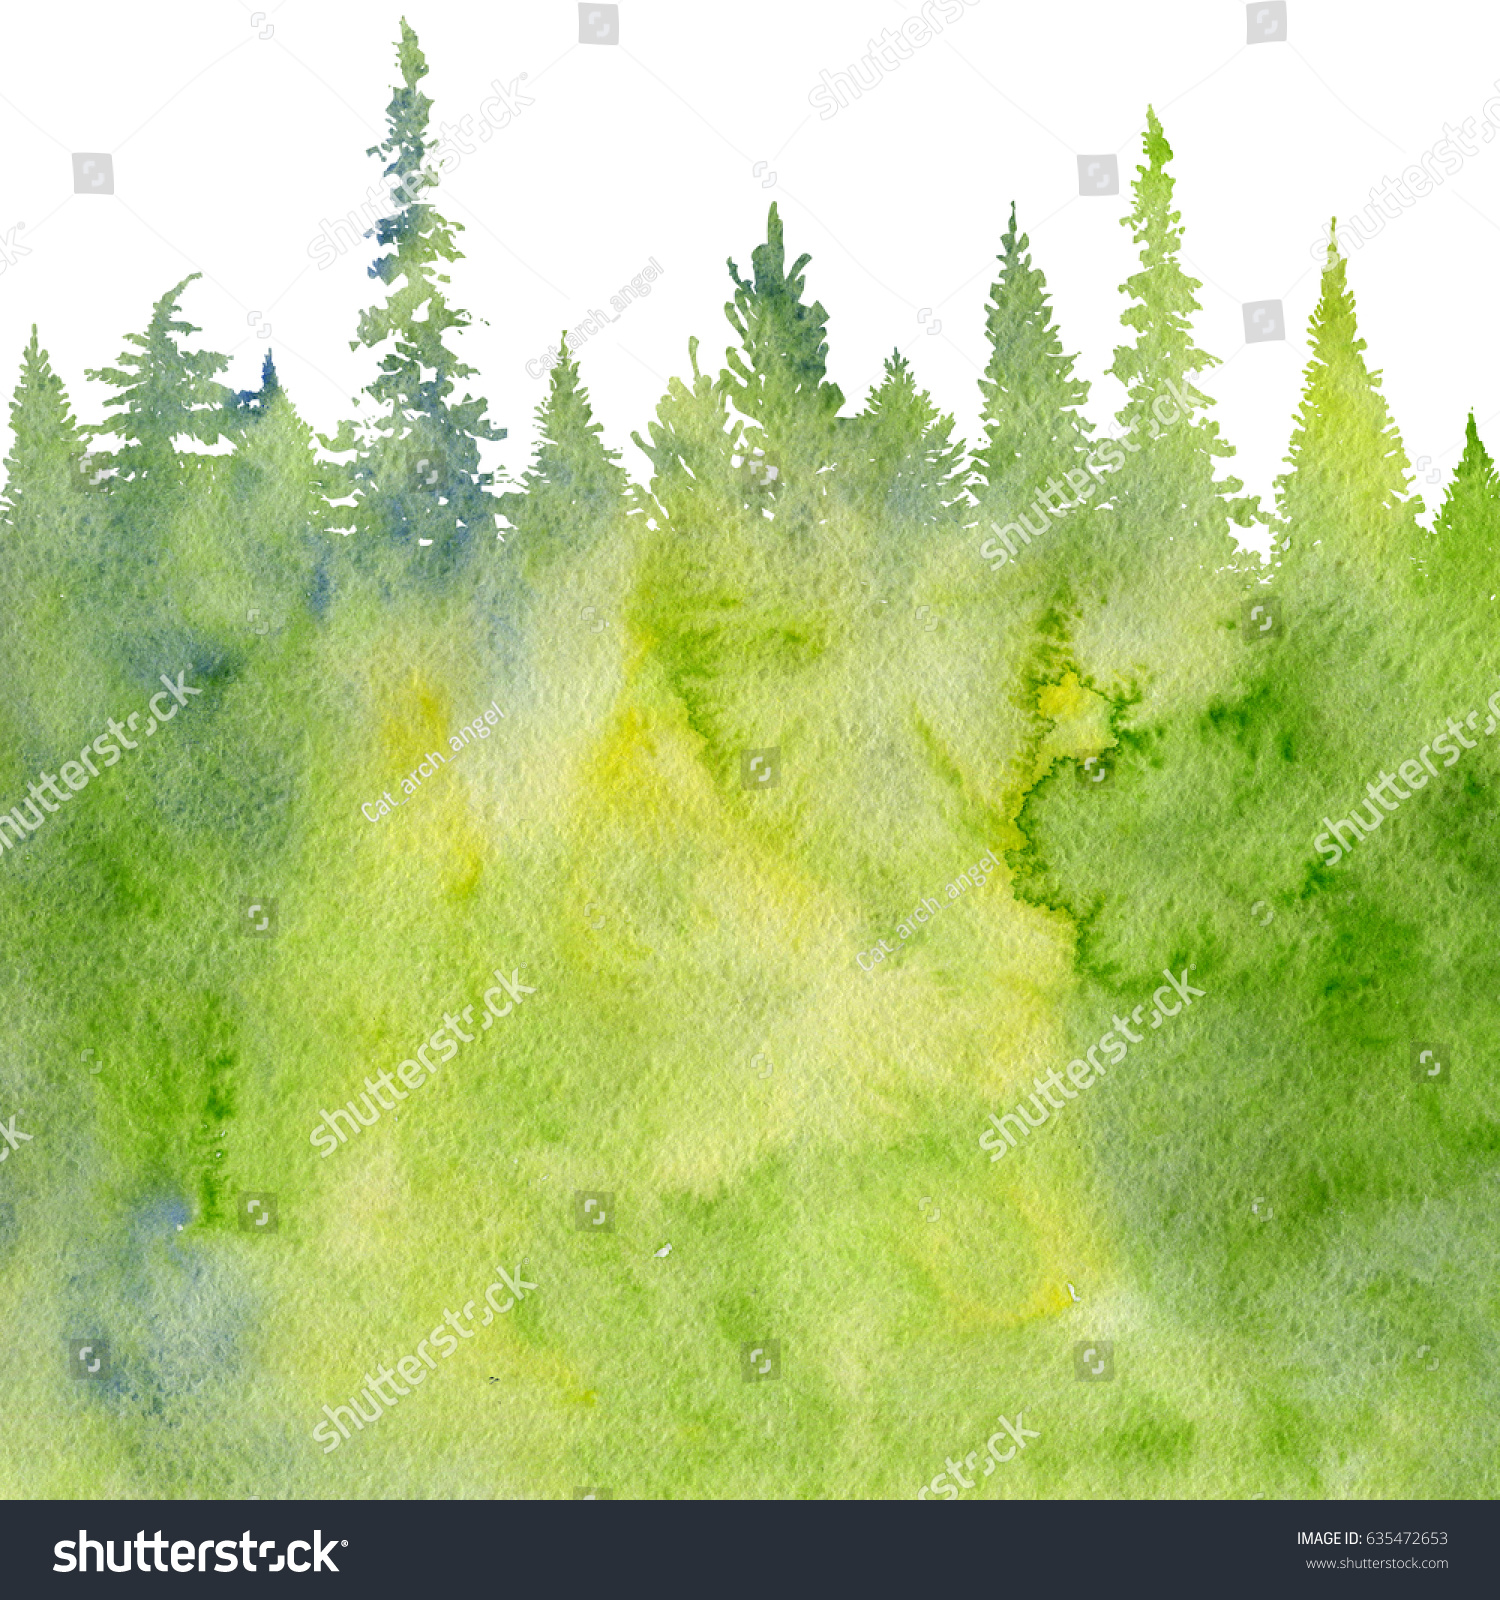 Watercolor Landscape Fir Trees Abstract Nature Stock Illustration ...